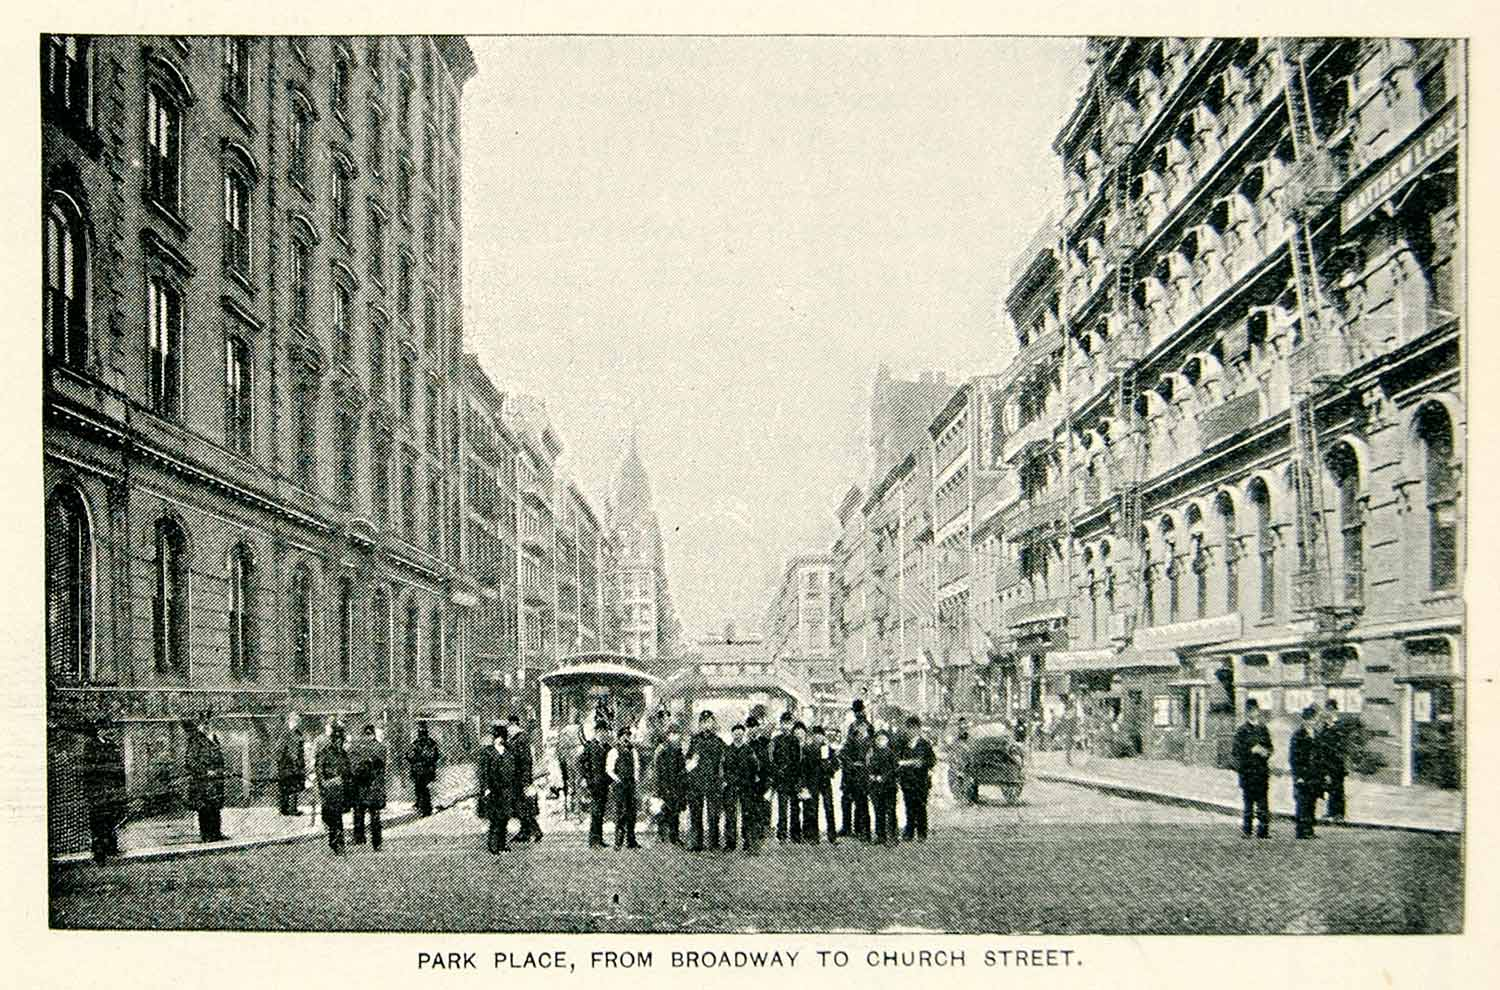 1893 Print Park Place New York City Street Pedestrians Historic Image View NY2A